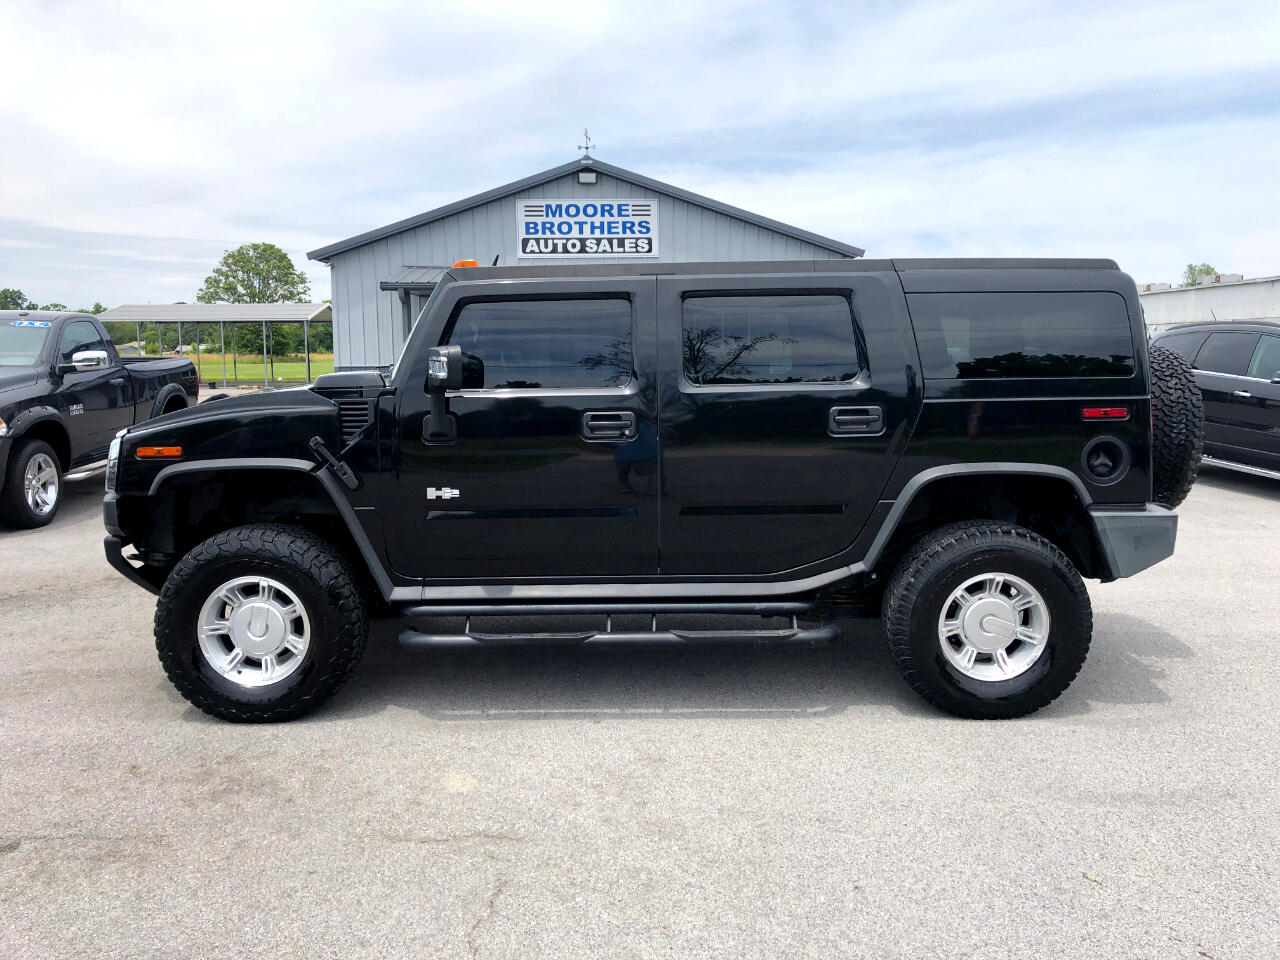 2006 HUMMER H2 4WD Luxury